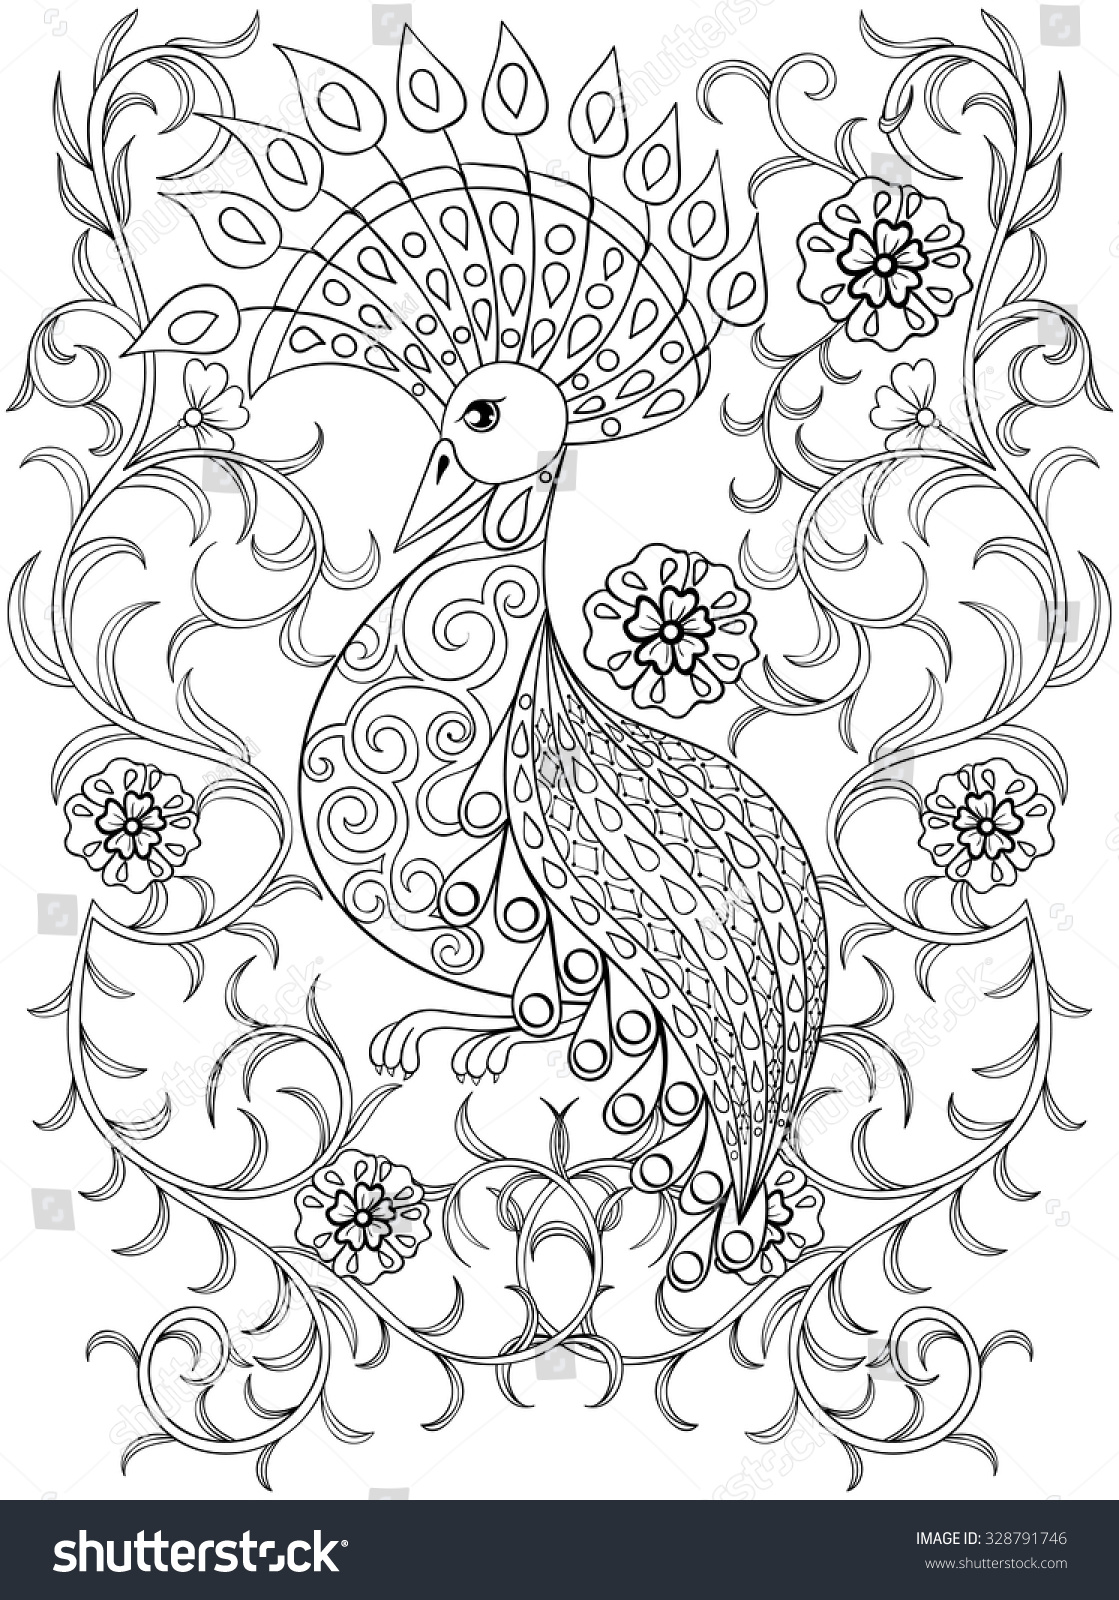 stock vector coloring page with bird in flowers zentangle illustartion bird for adult coloring books or